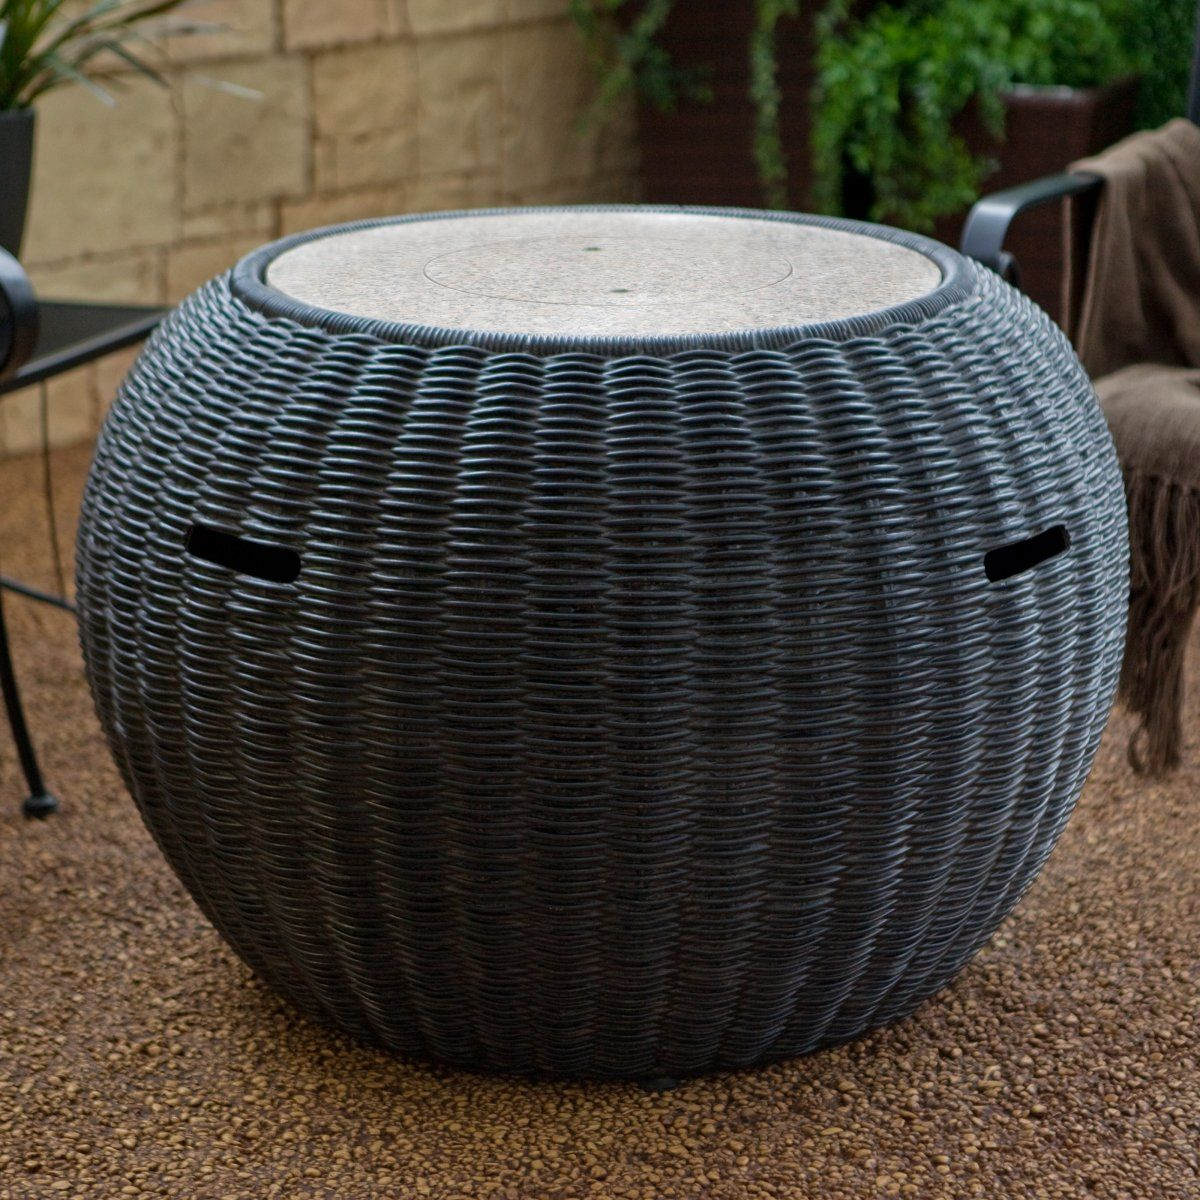 Stone Resin Wicker Design Propane Fire Pit Table With Burner Cover - Resin wicker fire pit table